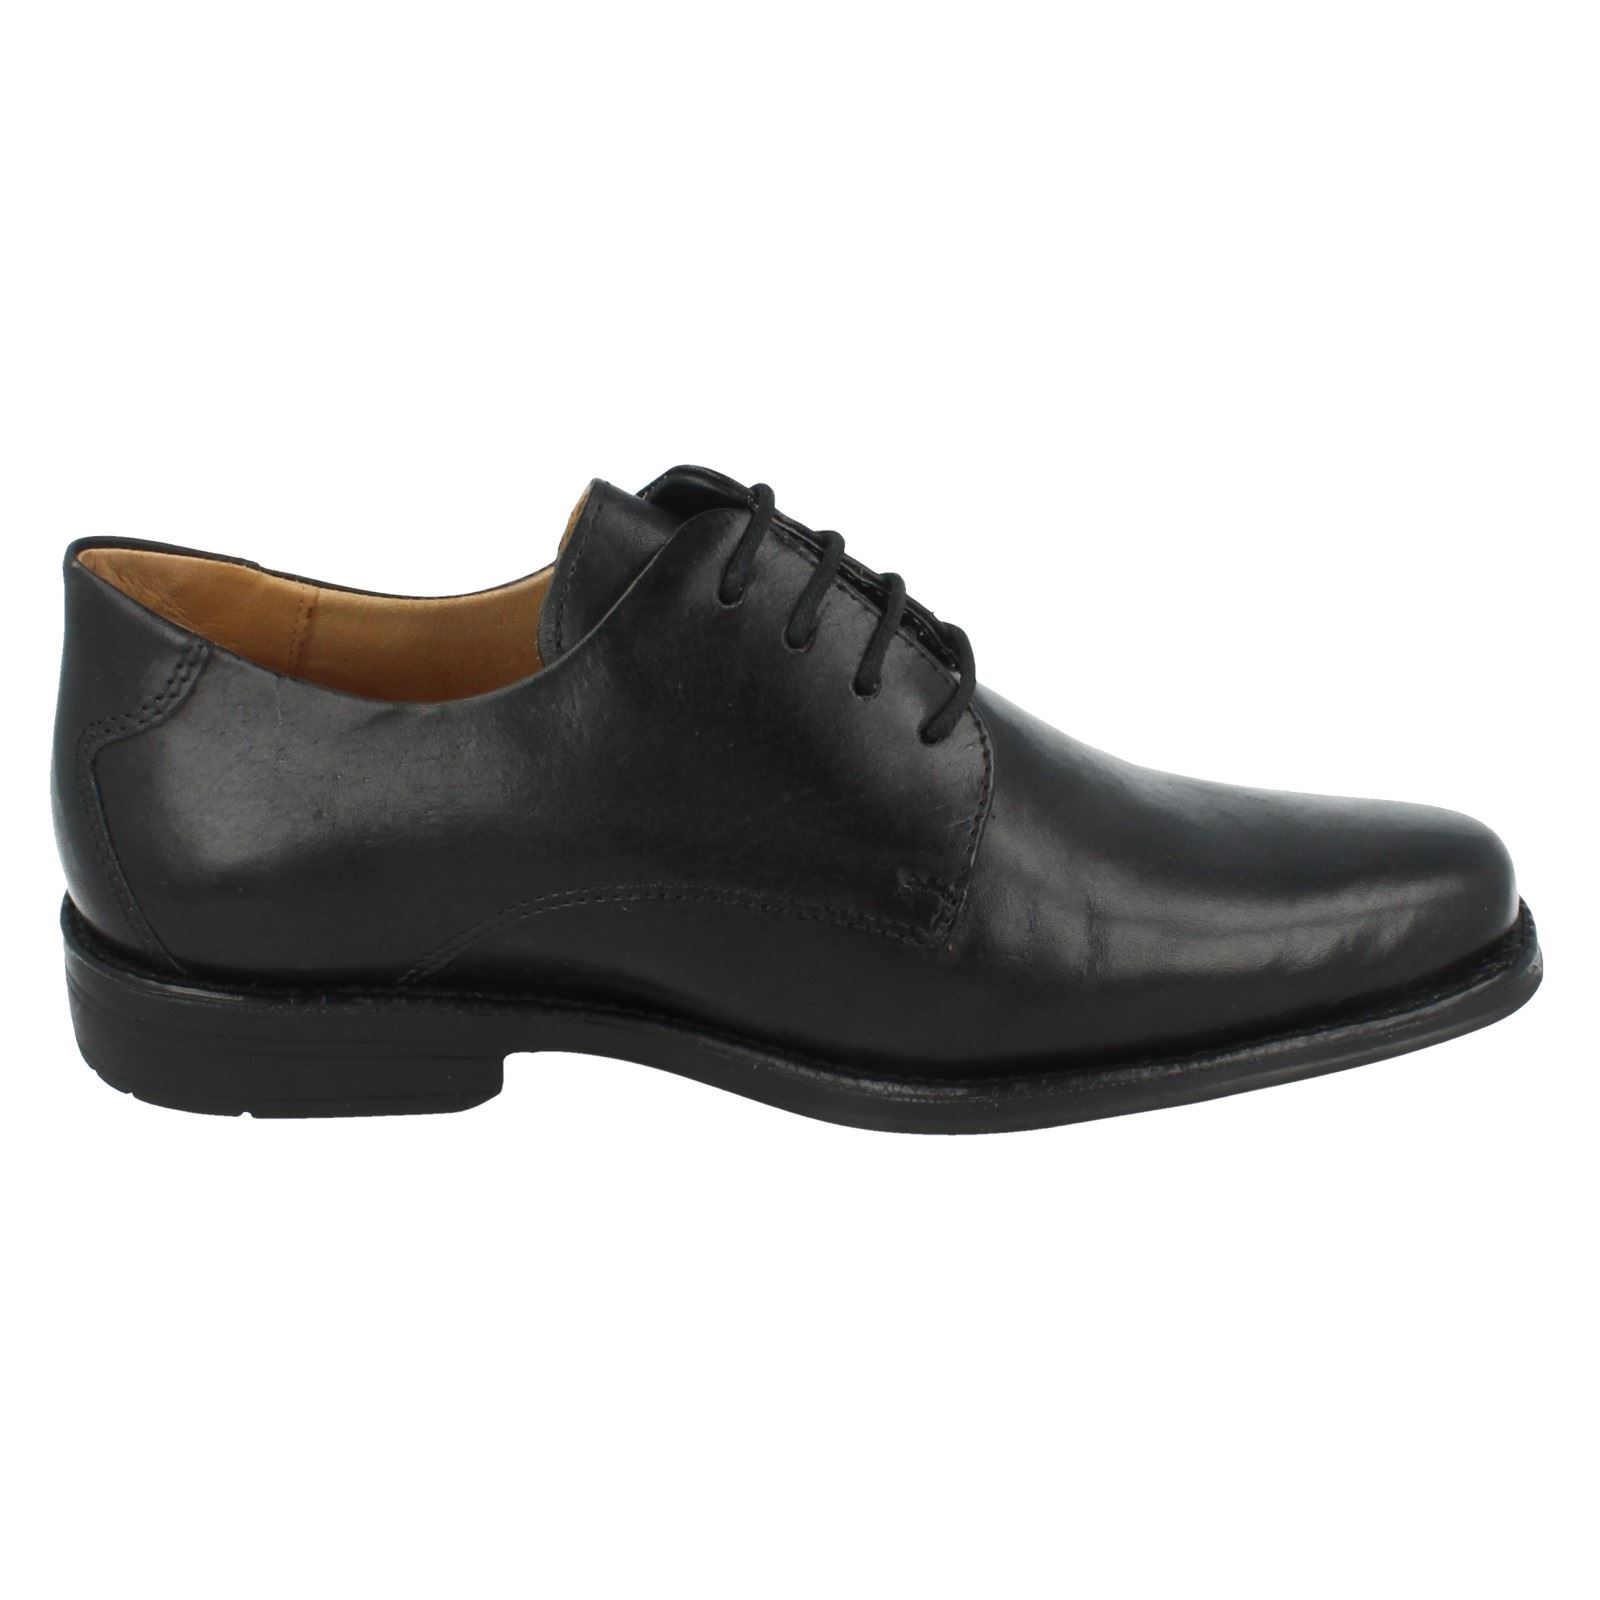 Mens Anatomic & Co Formal Lace Up ~ Shoes - Style Leme ~ Up N 4c54e2